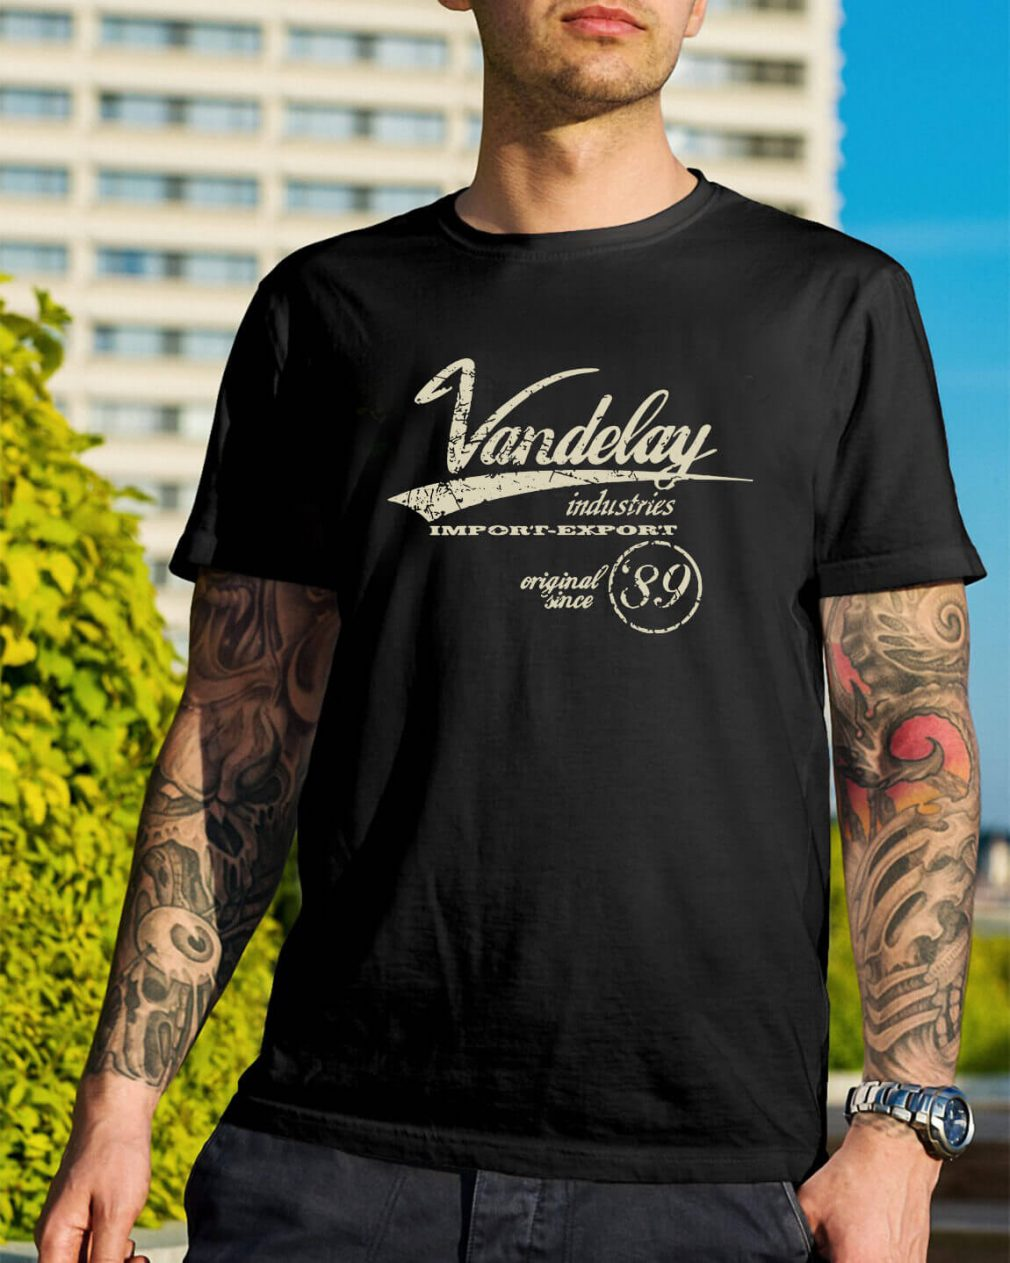 Vandelay industries importer exporter original since shirt